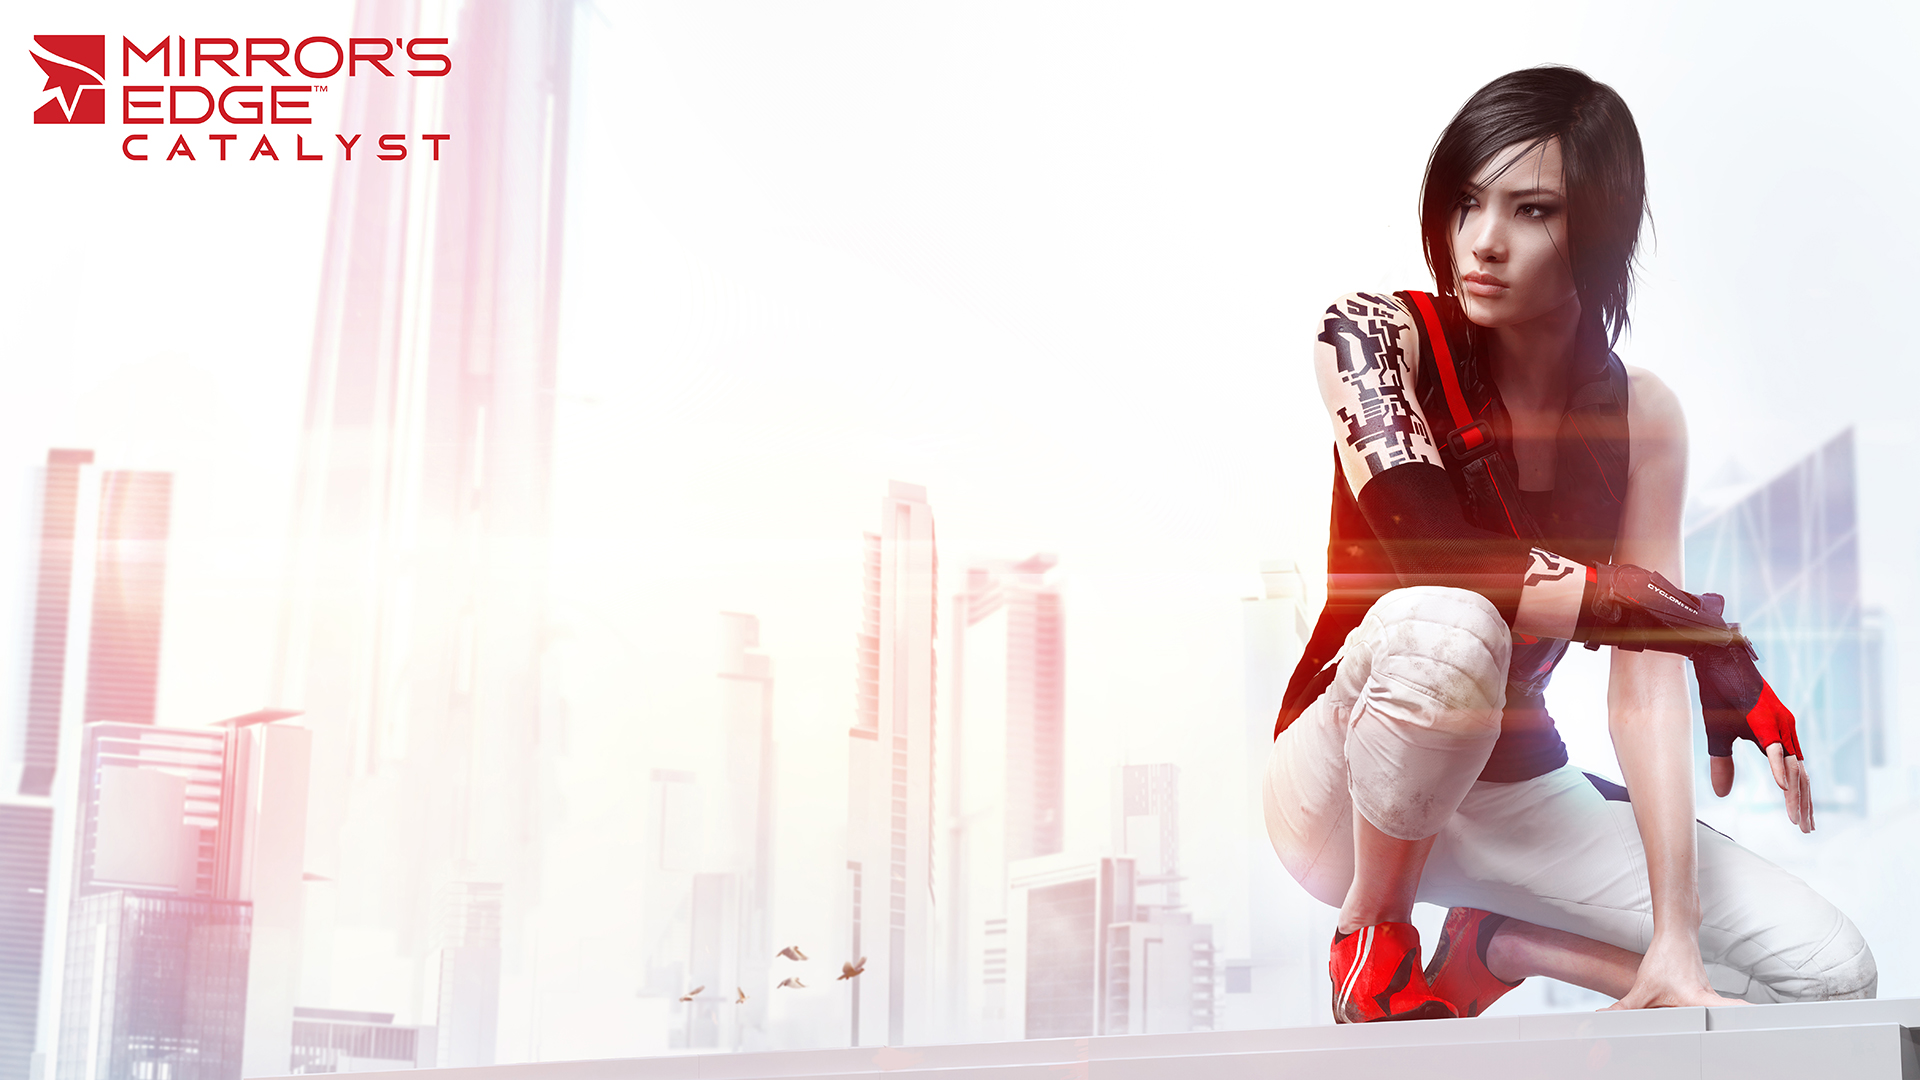 It's Not Mirror's Edge 2